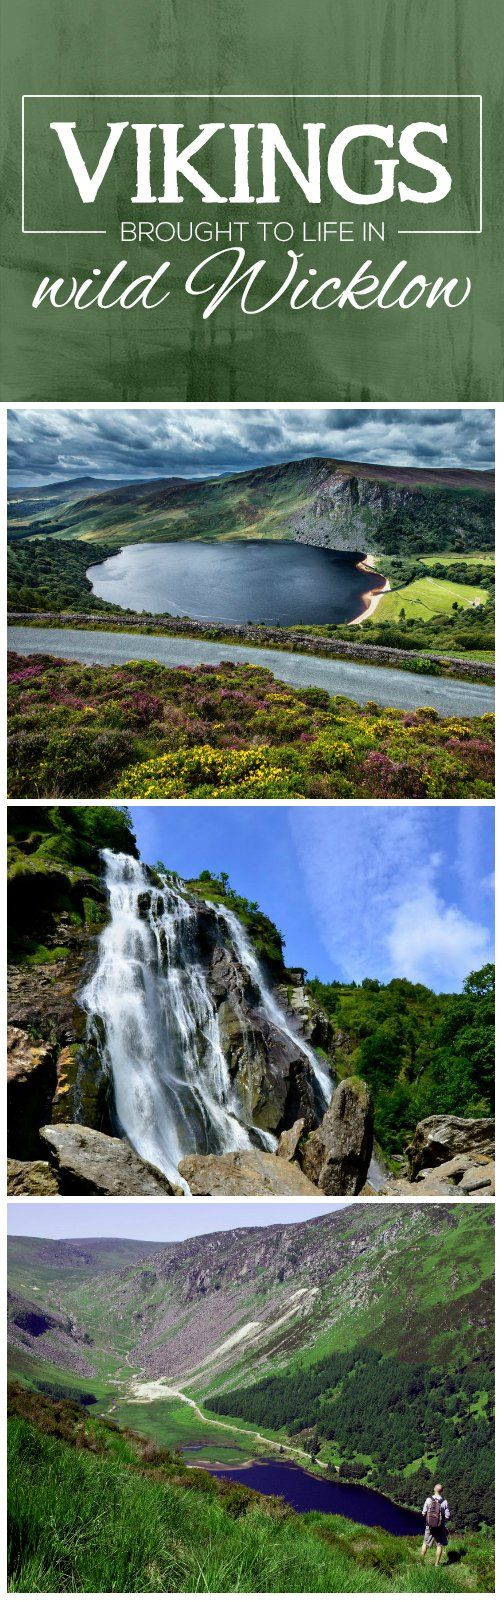 It may seem strange that the Vikings series is filmed in Ireland – but it all make sense when you take one glance at these striking images. County Wicklow is the perfect place to capture the wild views needed to bring this hit TV show to life. Lough Tay is the main filming location, acting as the epic backdrop to the village set; while Powerscourt Waterfall and the stunning valley of Glendalough also feature in all their splendor.